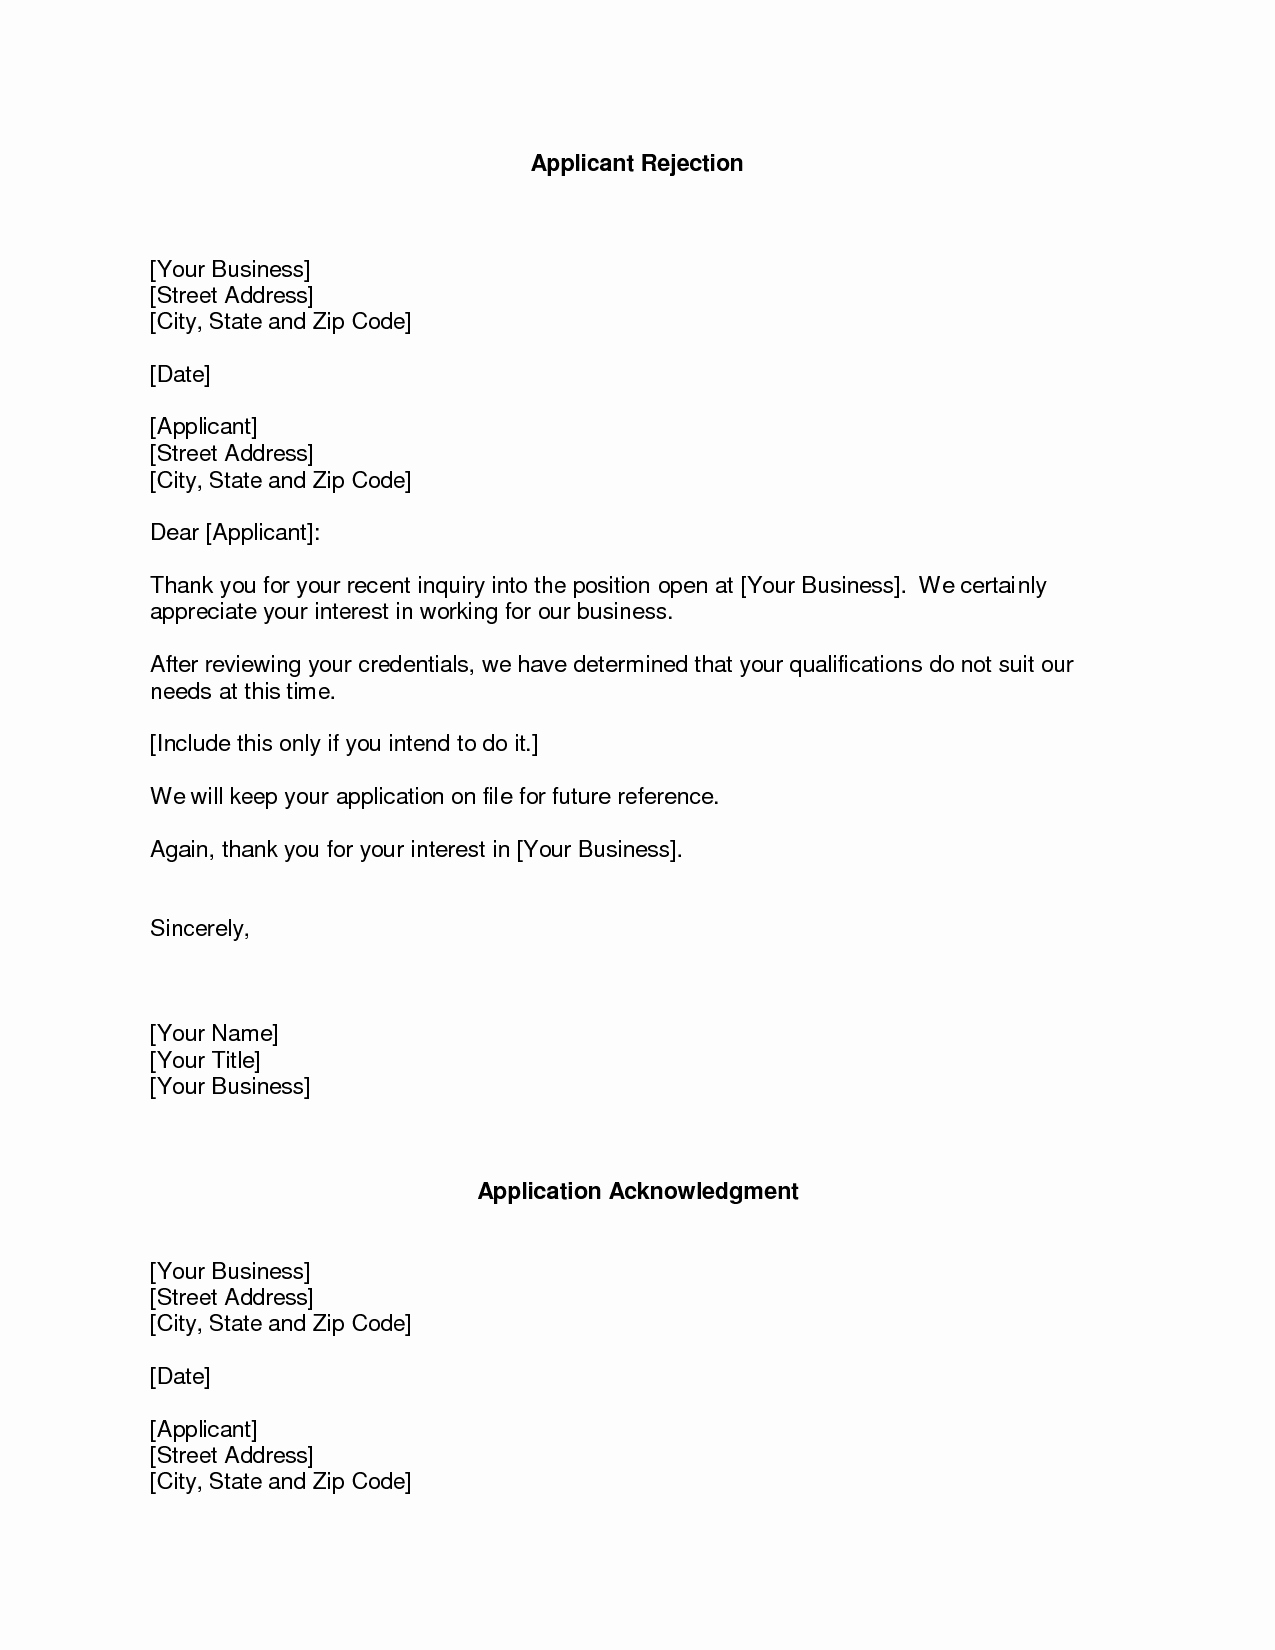 Free Business Letter Template Awesome Business Rejection Letter the Rejection Letter format is